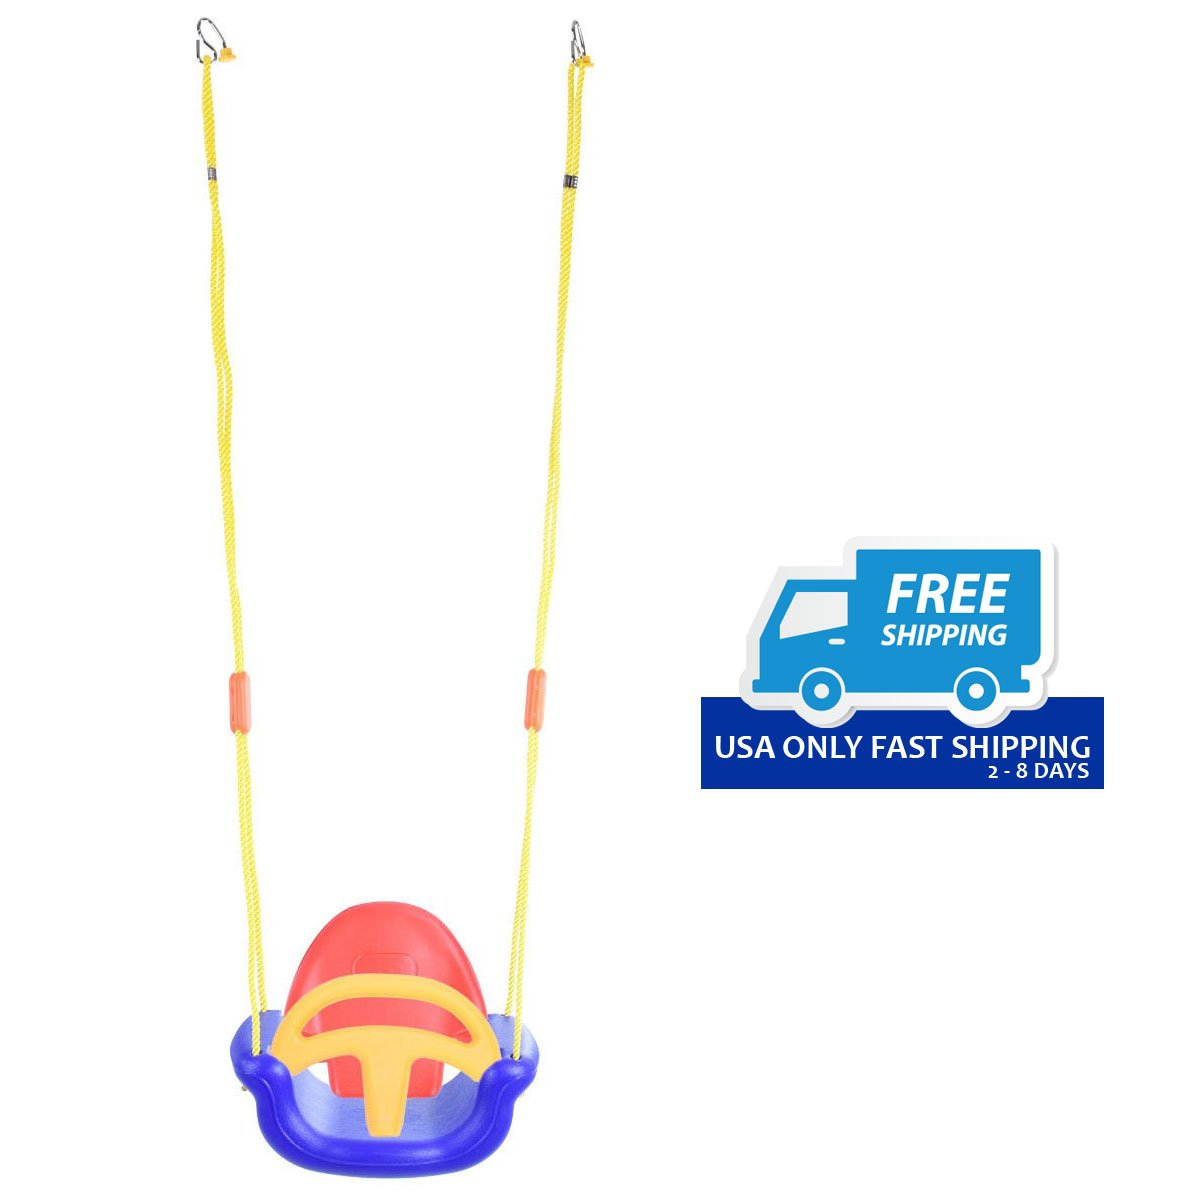 3 In 1 Infant To Toddler Swing Set Secure Detachable Outdoor Play